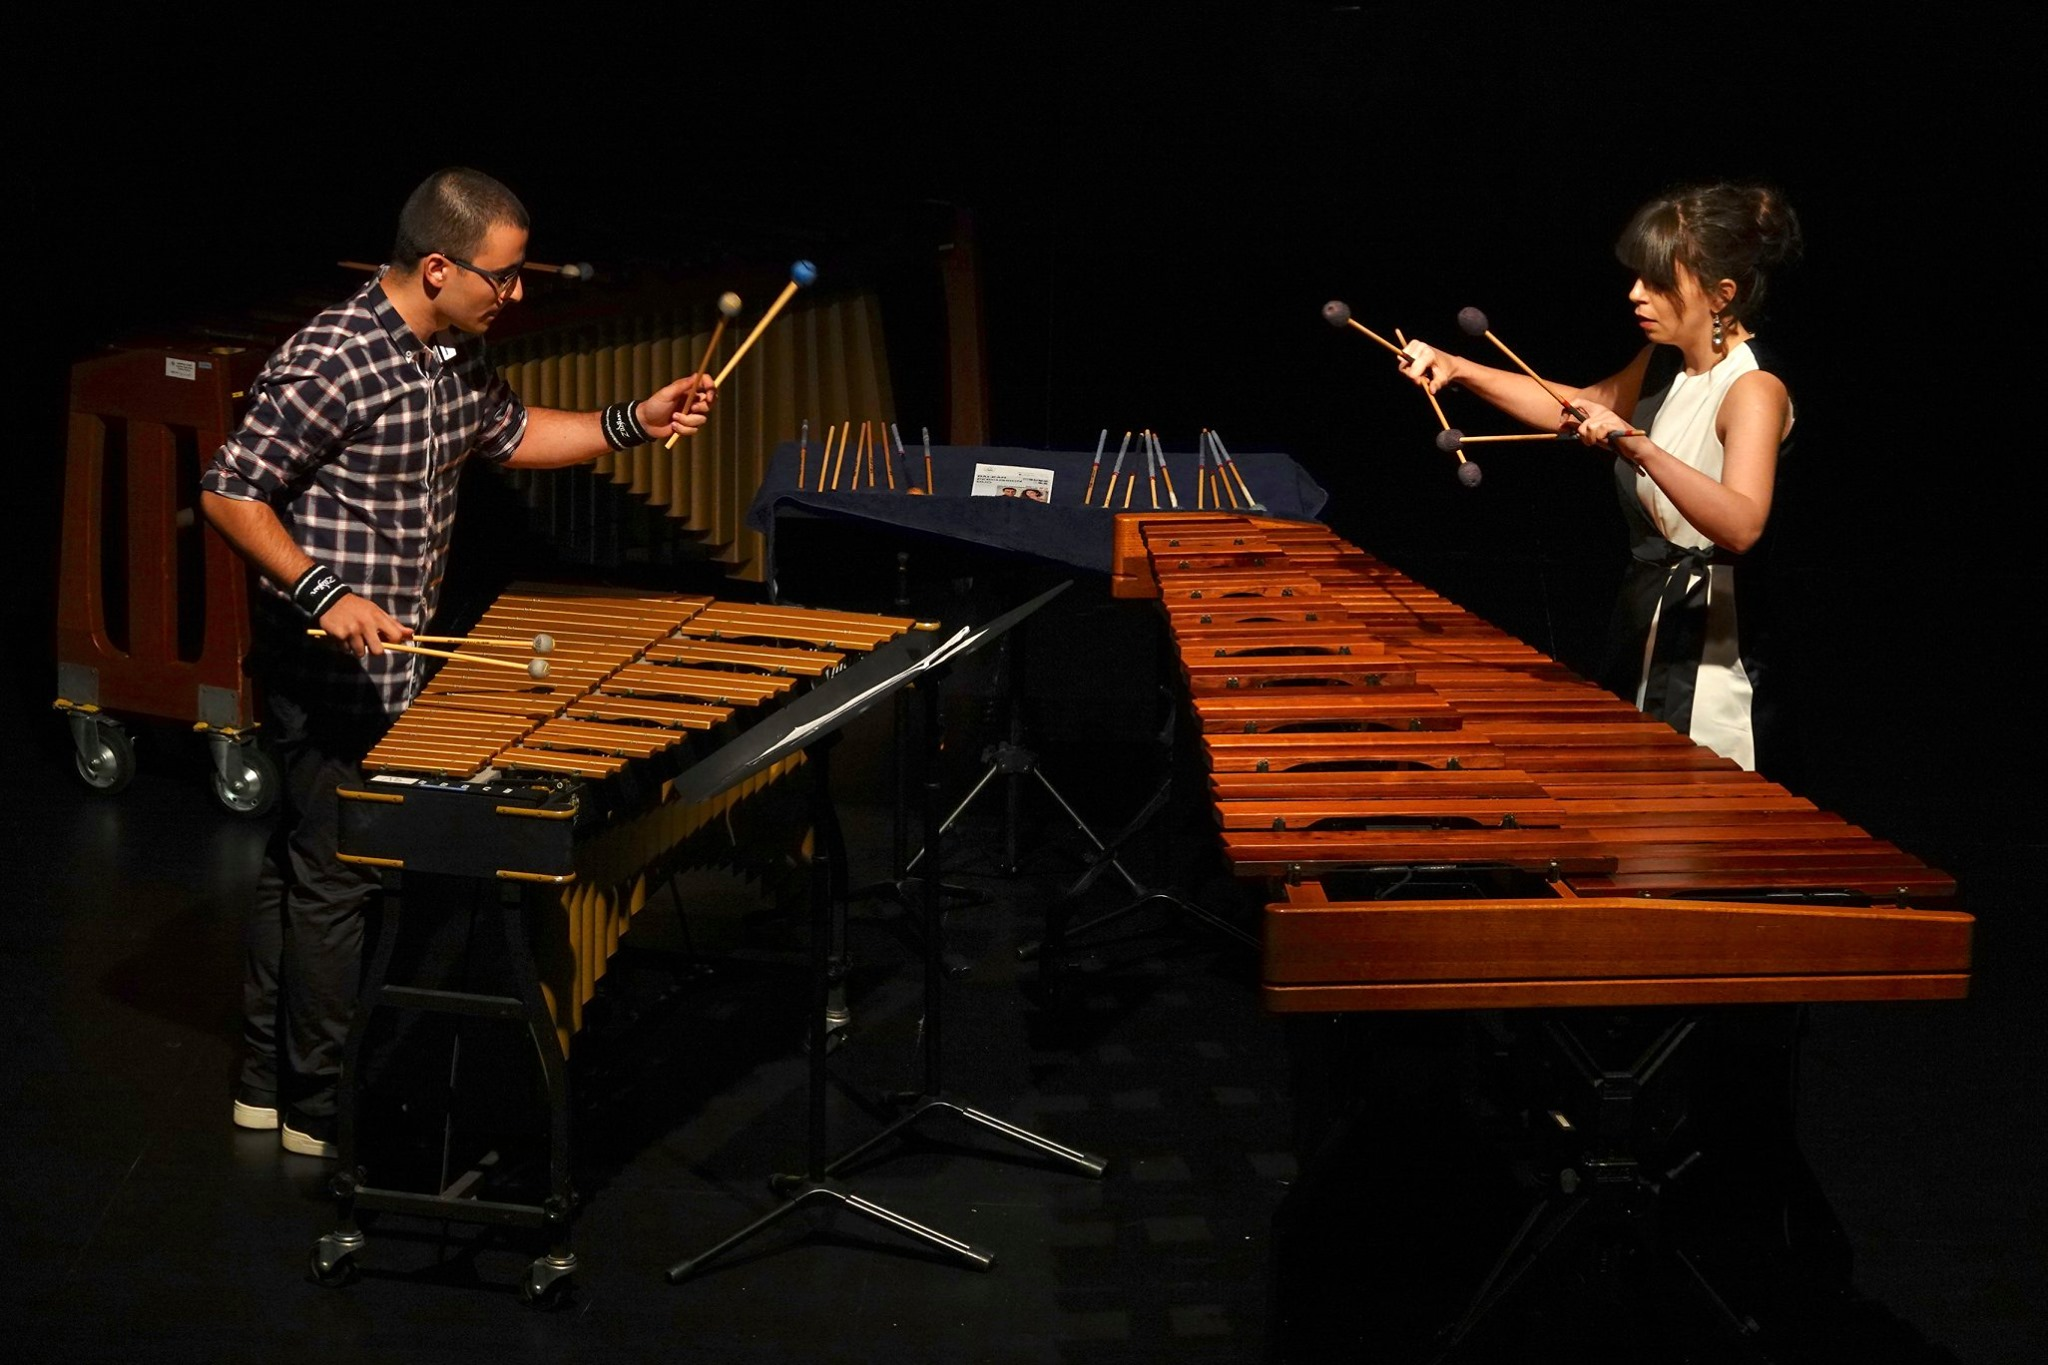 Hong Kong Performance (courtesy of Toolbox Percussion)